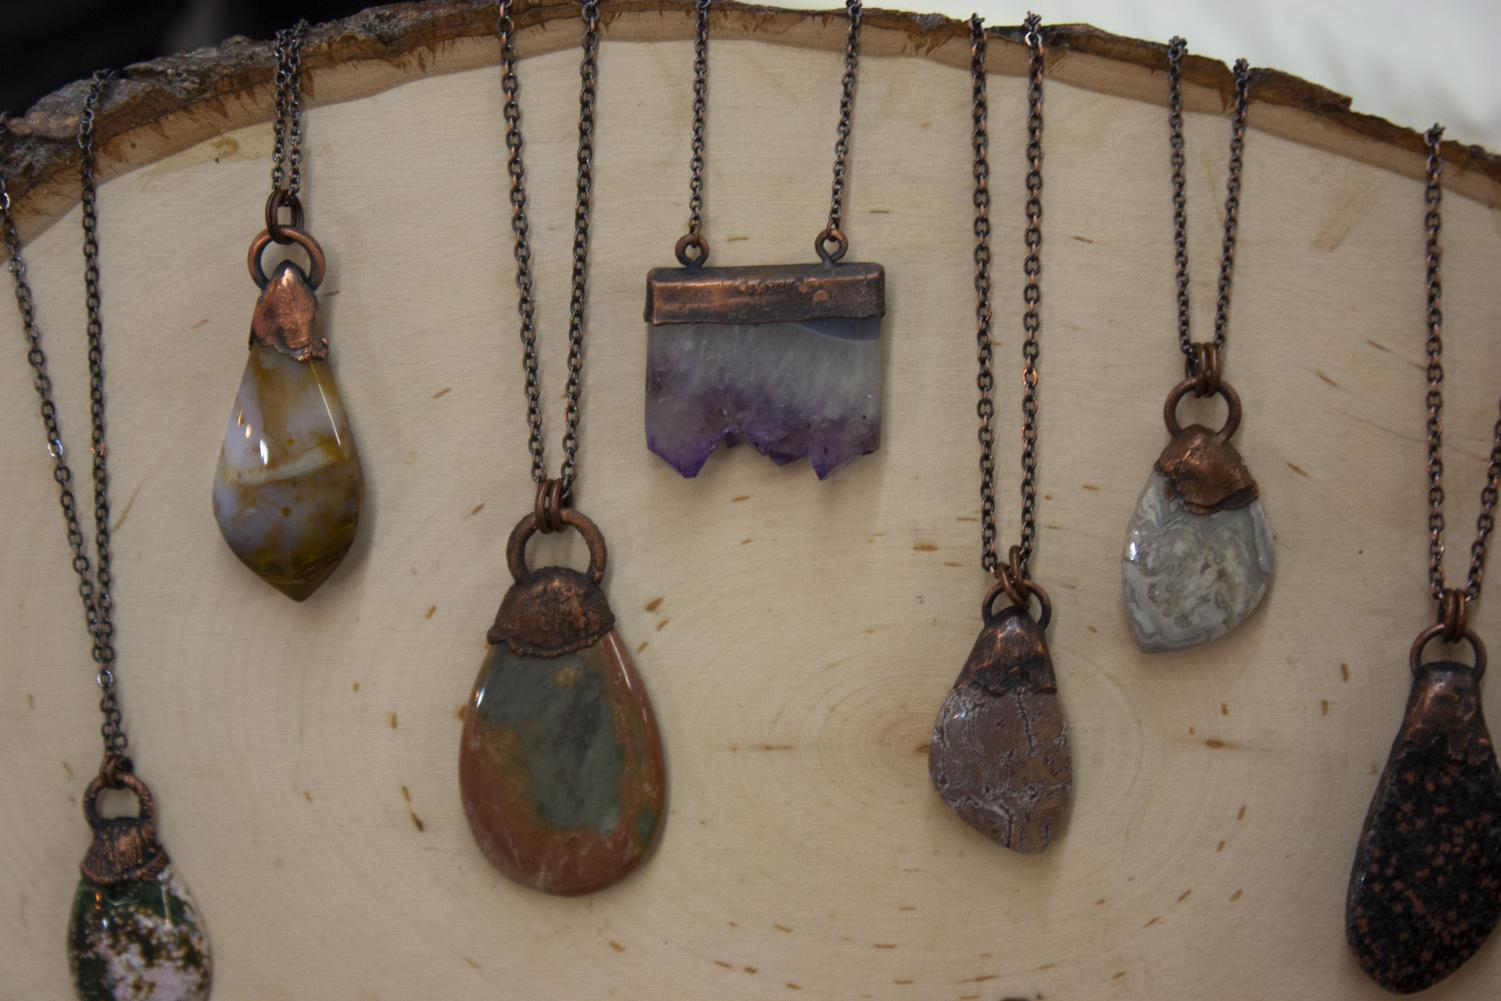 The+Bohemian+Cottage+Co.+was+selling+agate+and+amethyst+jewelry.